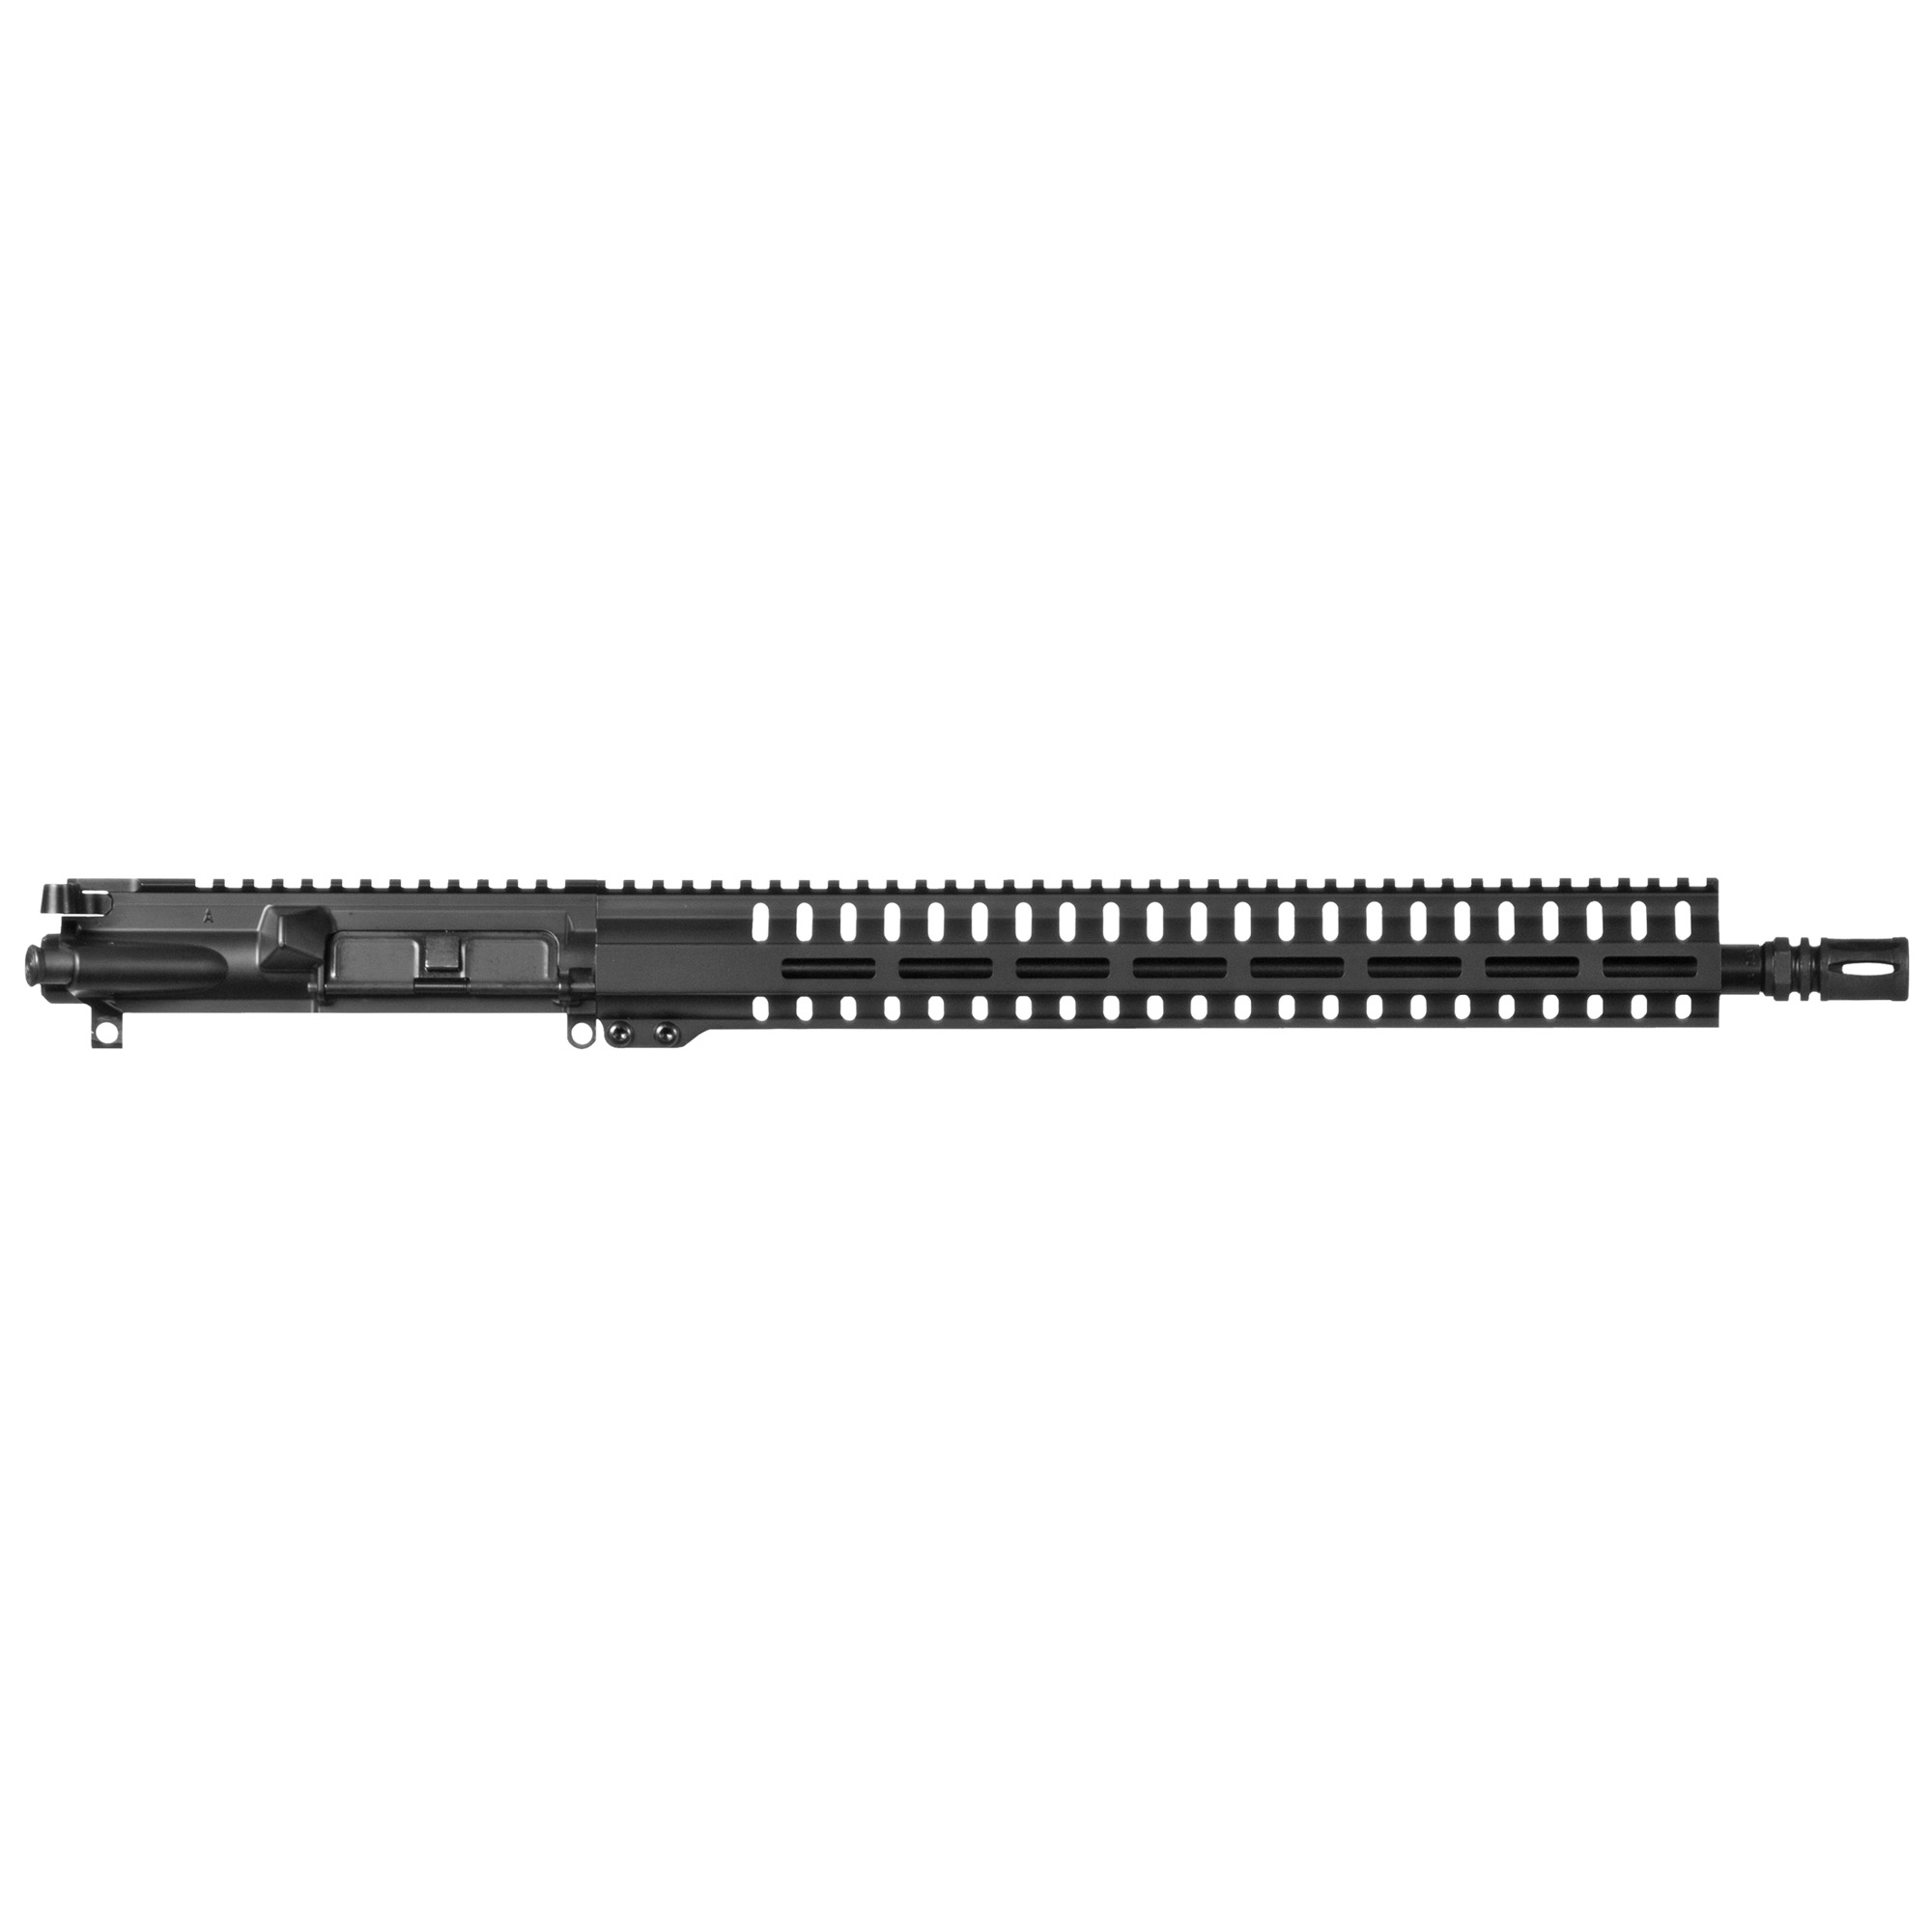 "Cmmg Uppr Resolute 100 9mm 16.1"" Blk"